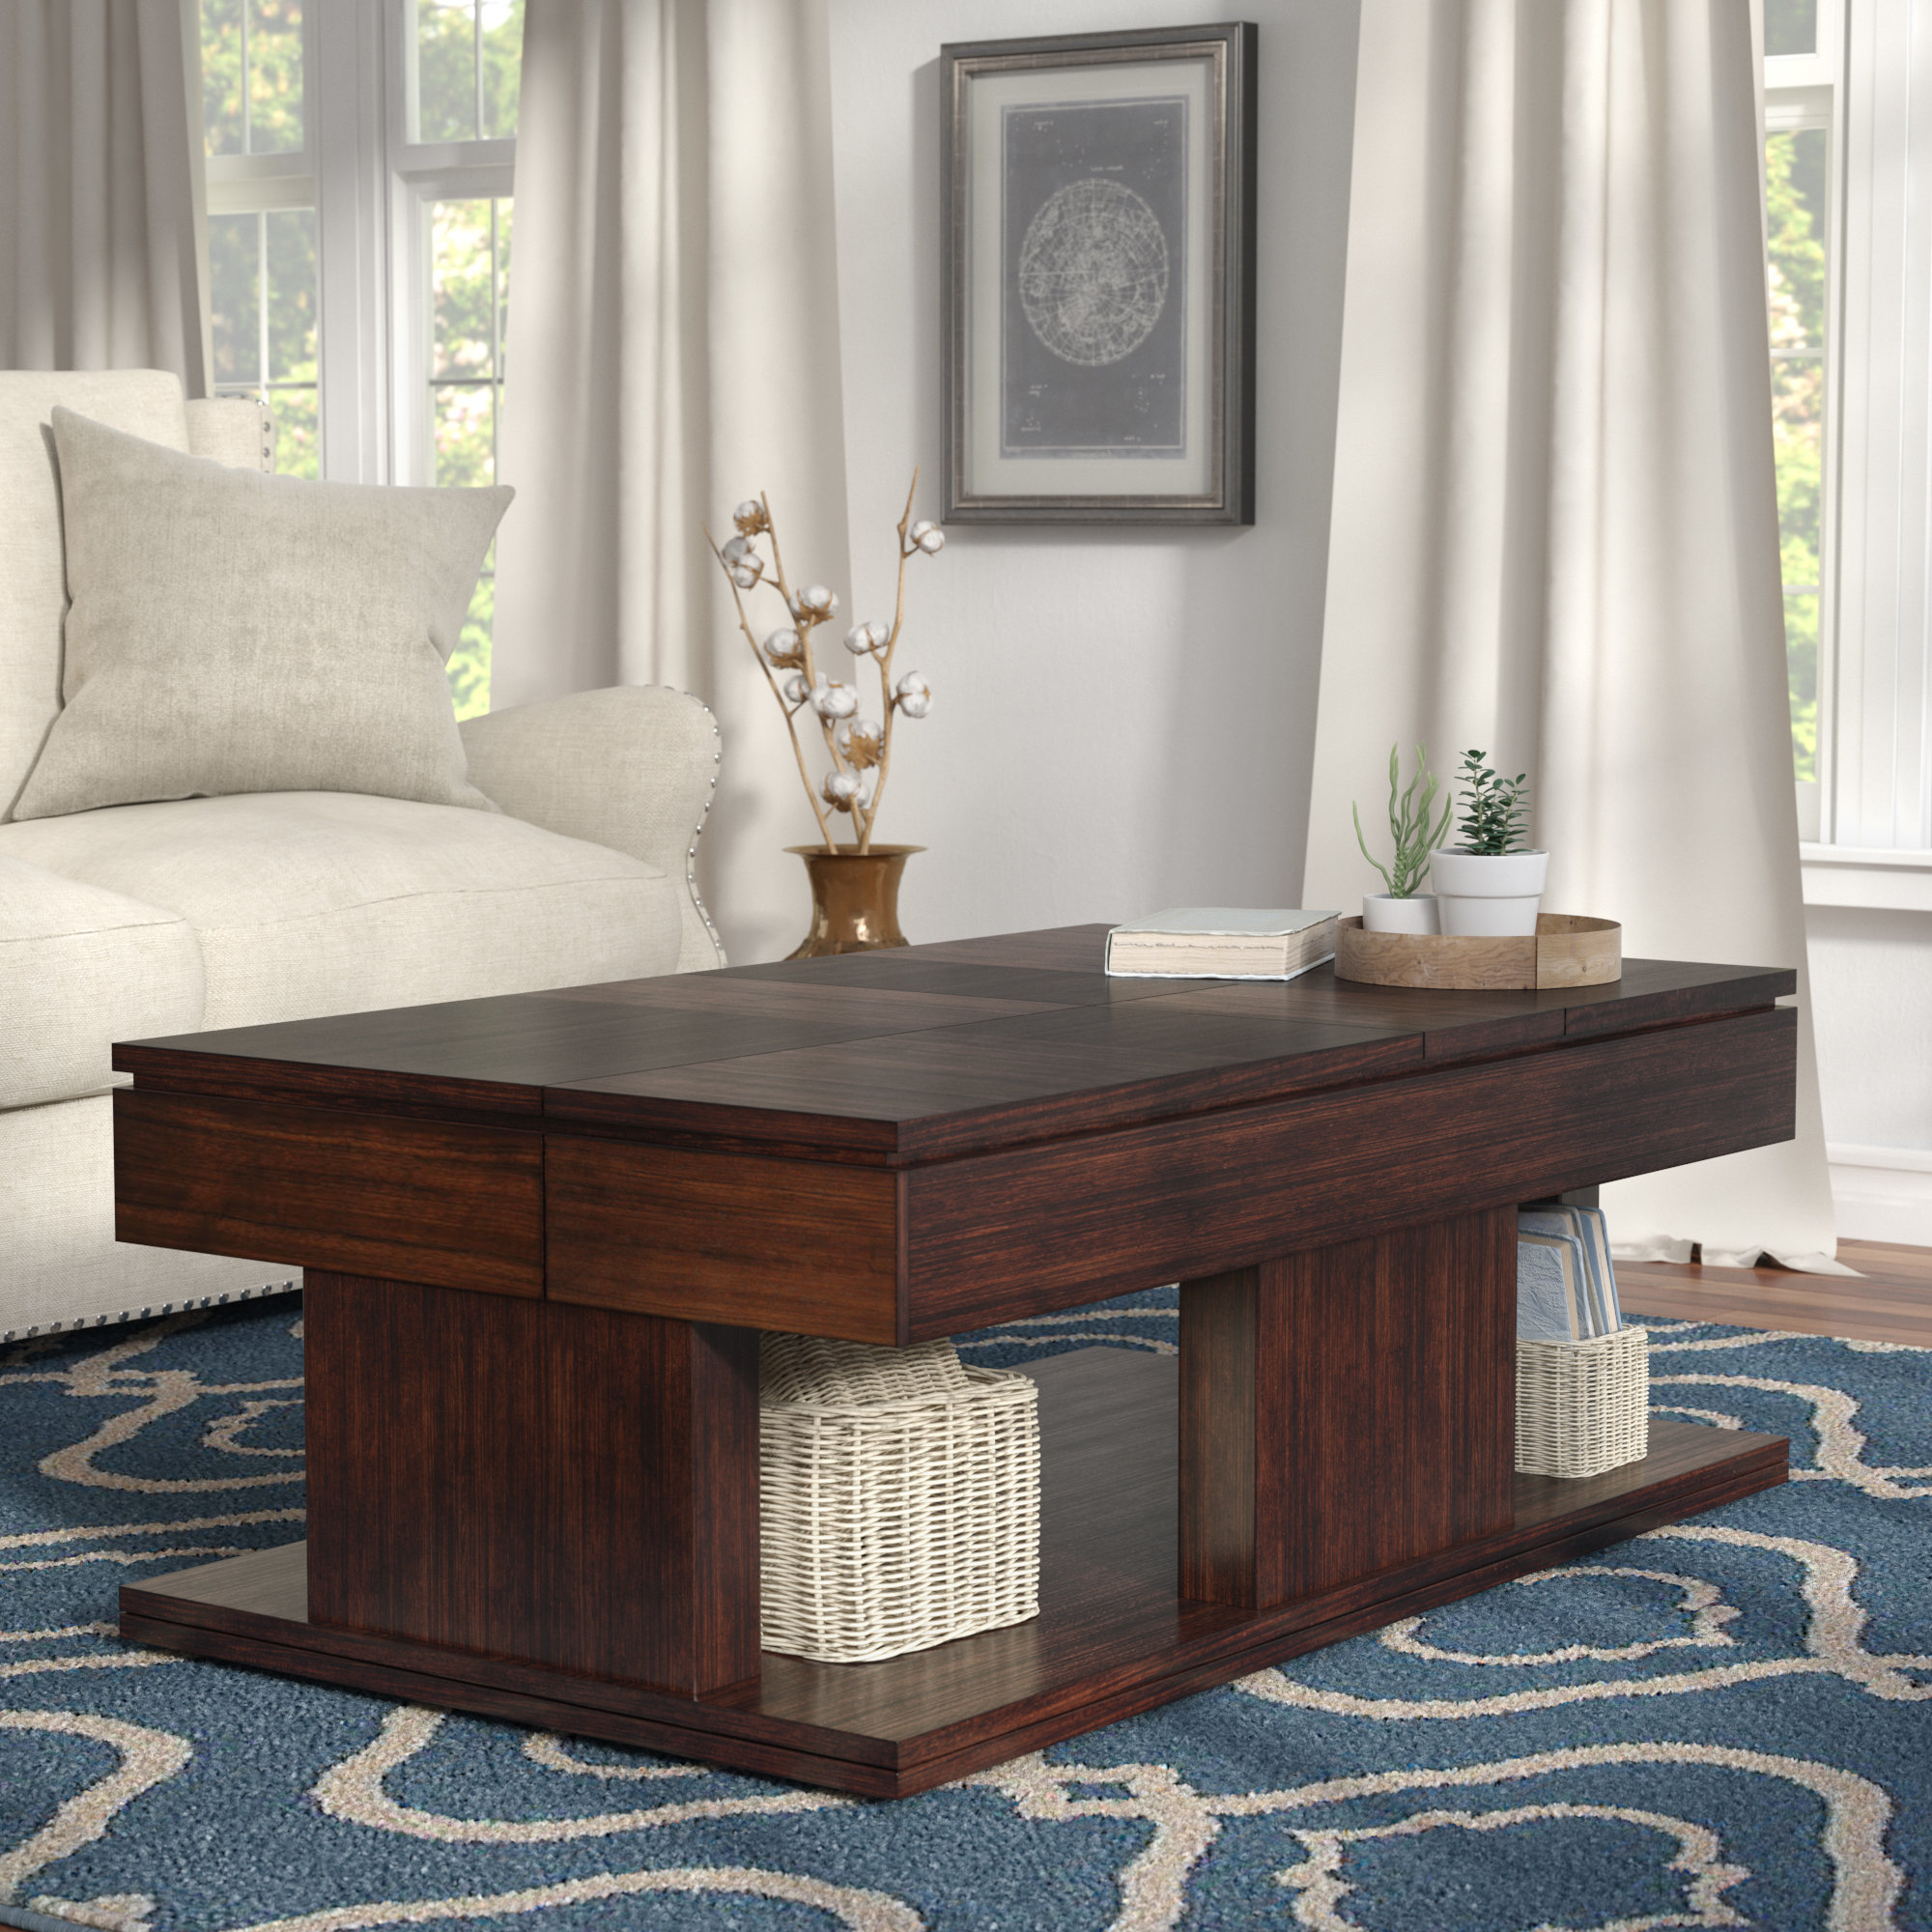 Darby Home Co Janene Lift Top Coffee Table (View 18 of 20)